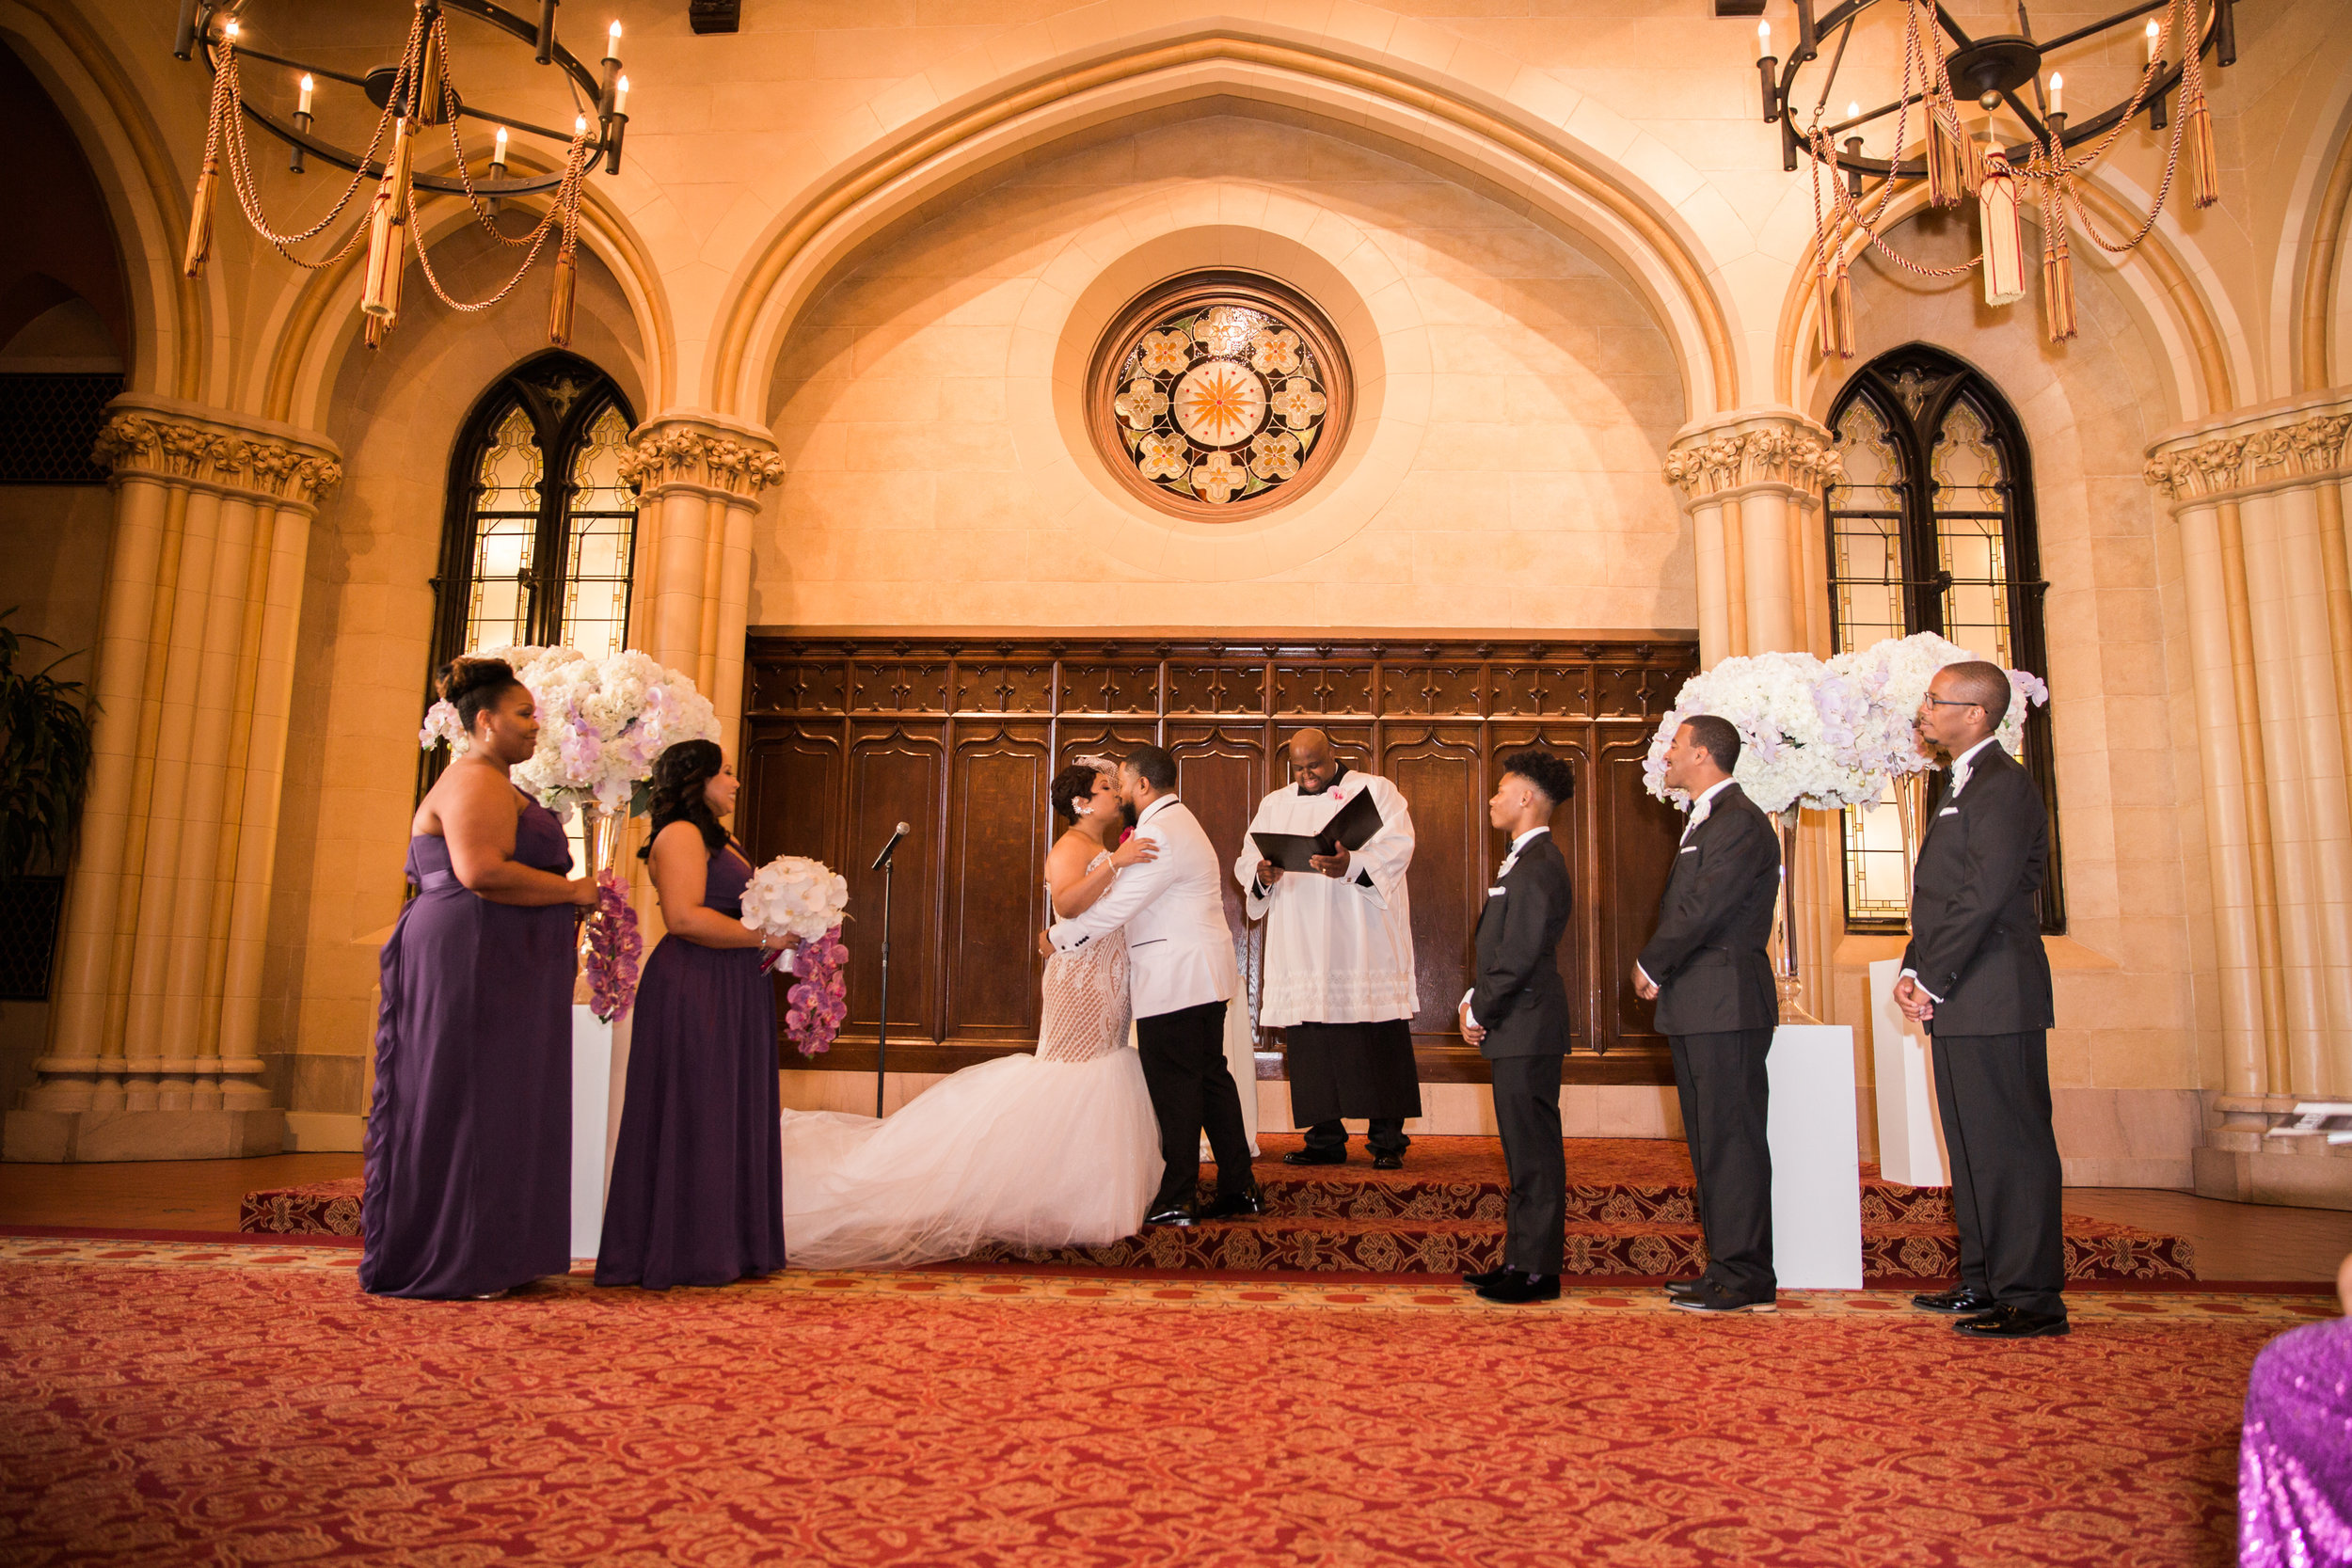 Best Classic Black Bride at The Grand Baltimore Maryland Husband and Wife Wedding Photographers Megapixels Media (49 of 98).jpg